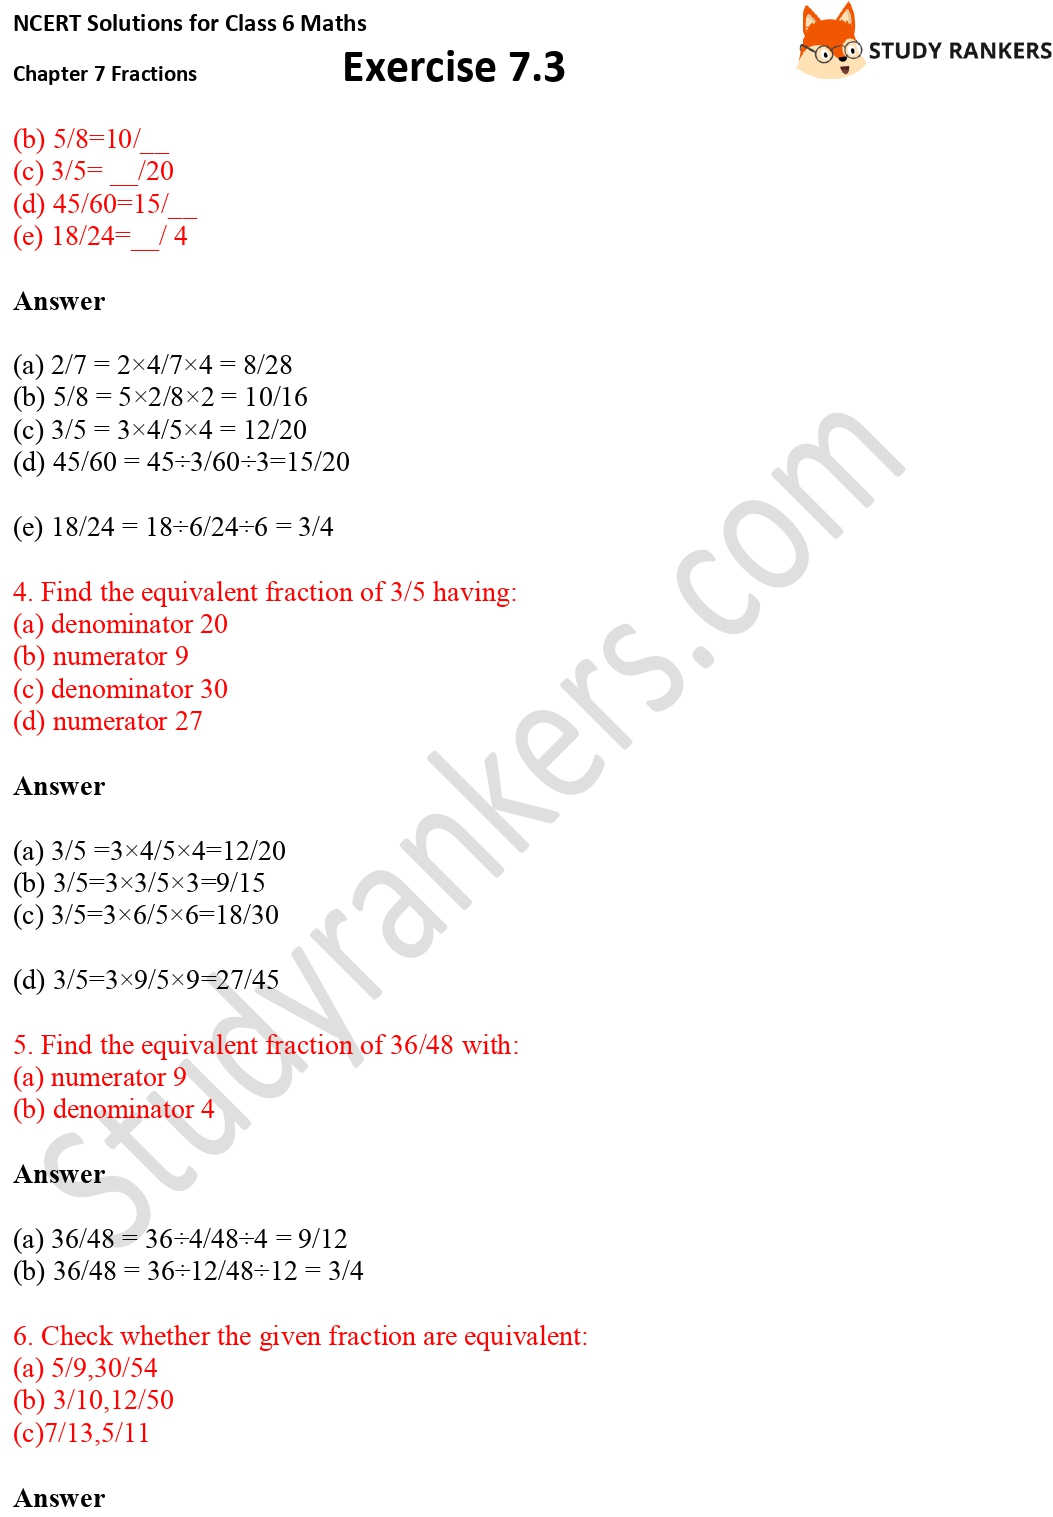 NCERT Solutions for Class 6 Maths Chapter 7 Fractions Exercise 7.3 Part 2